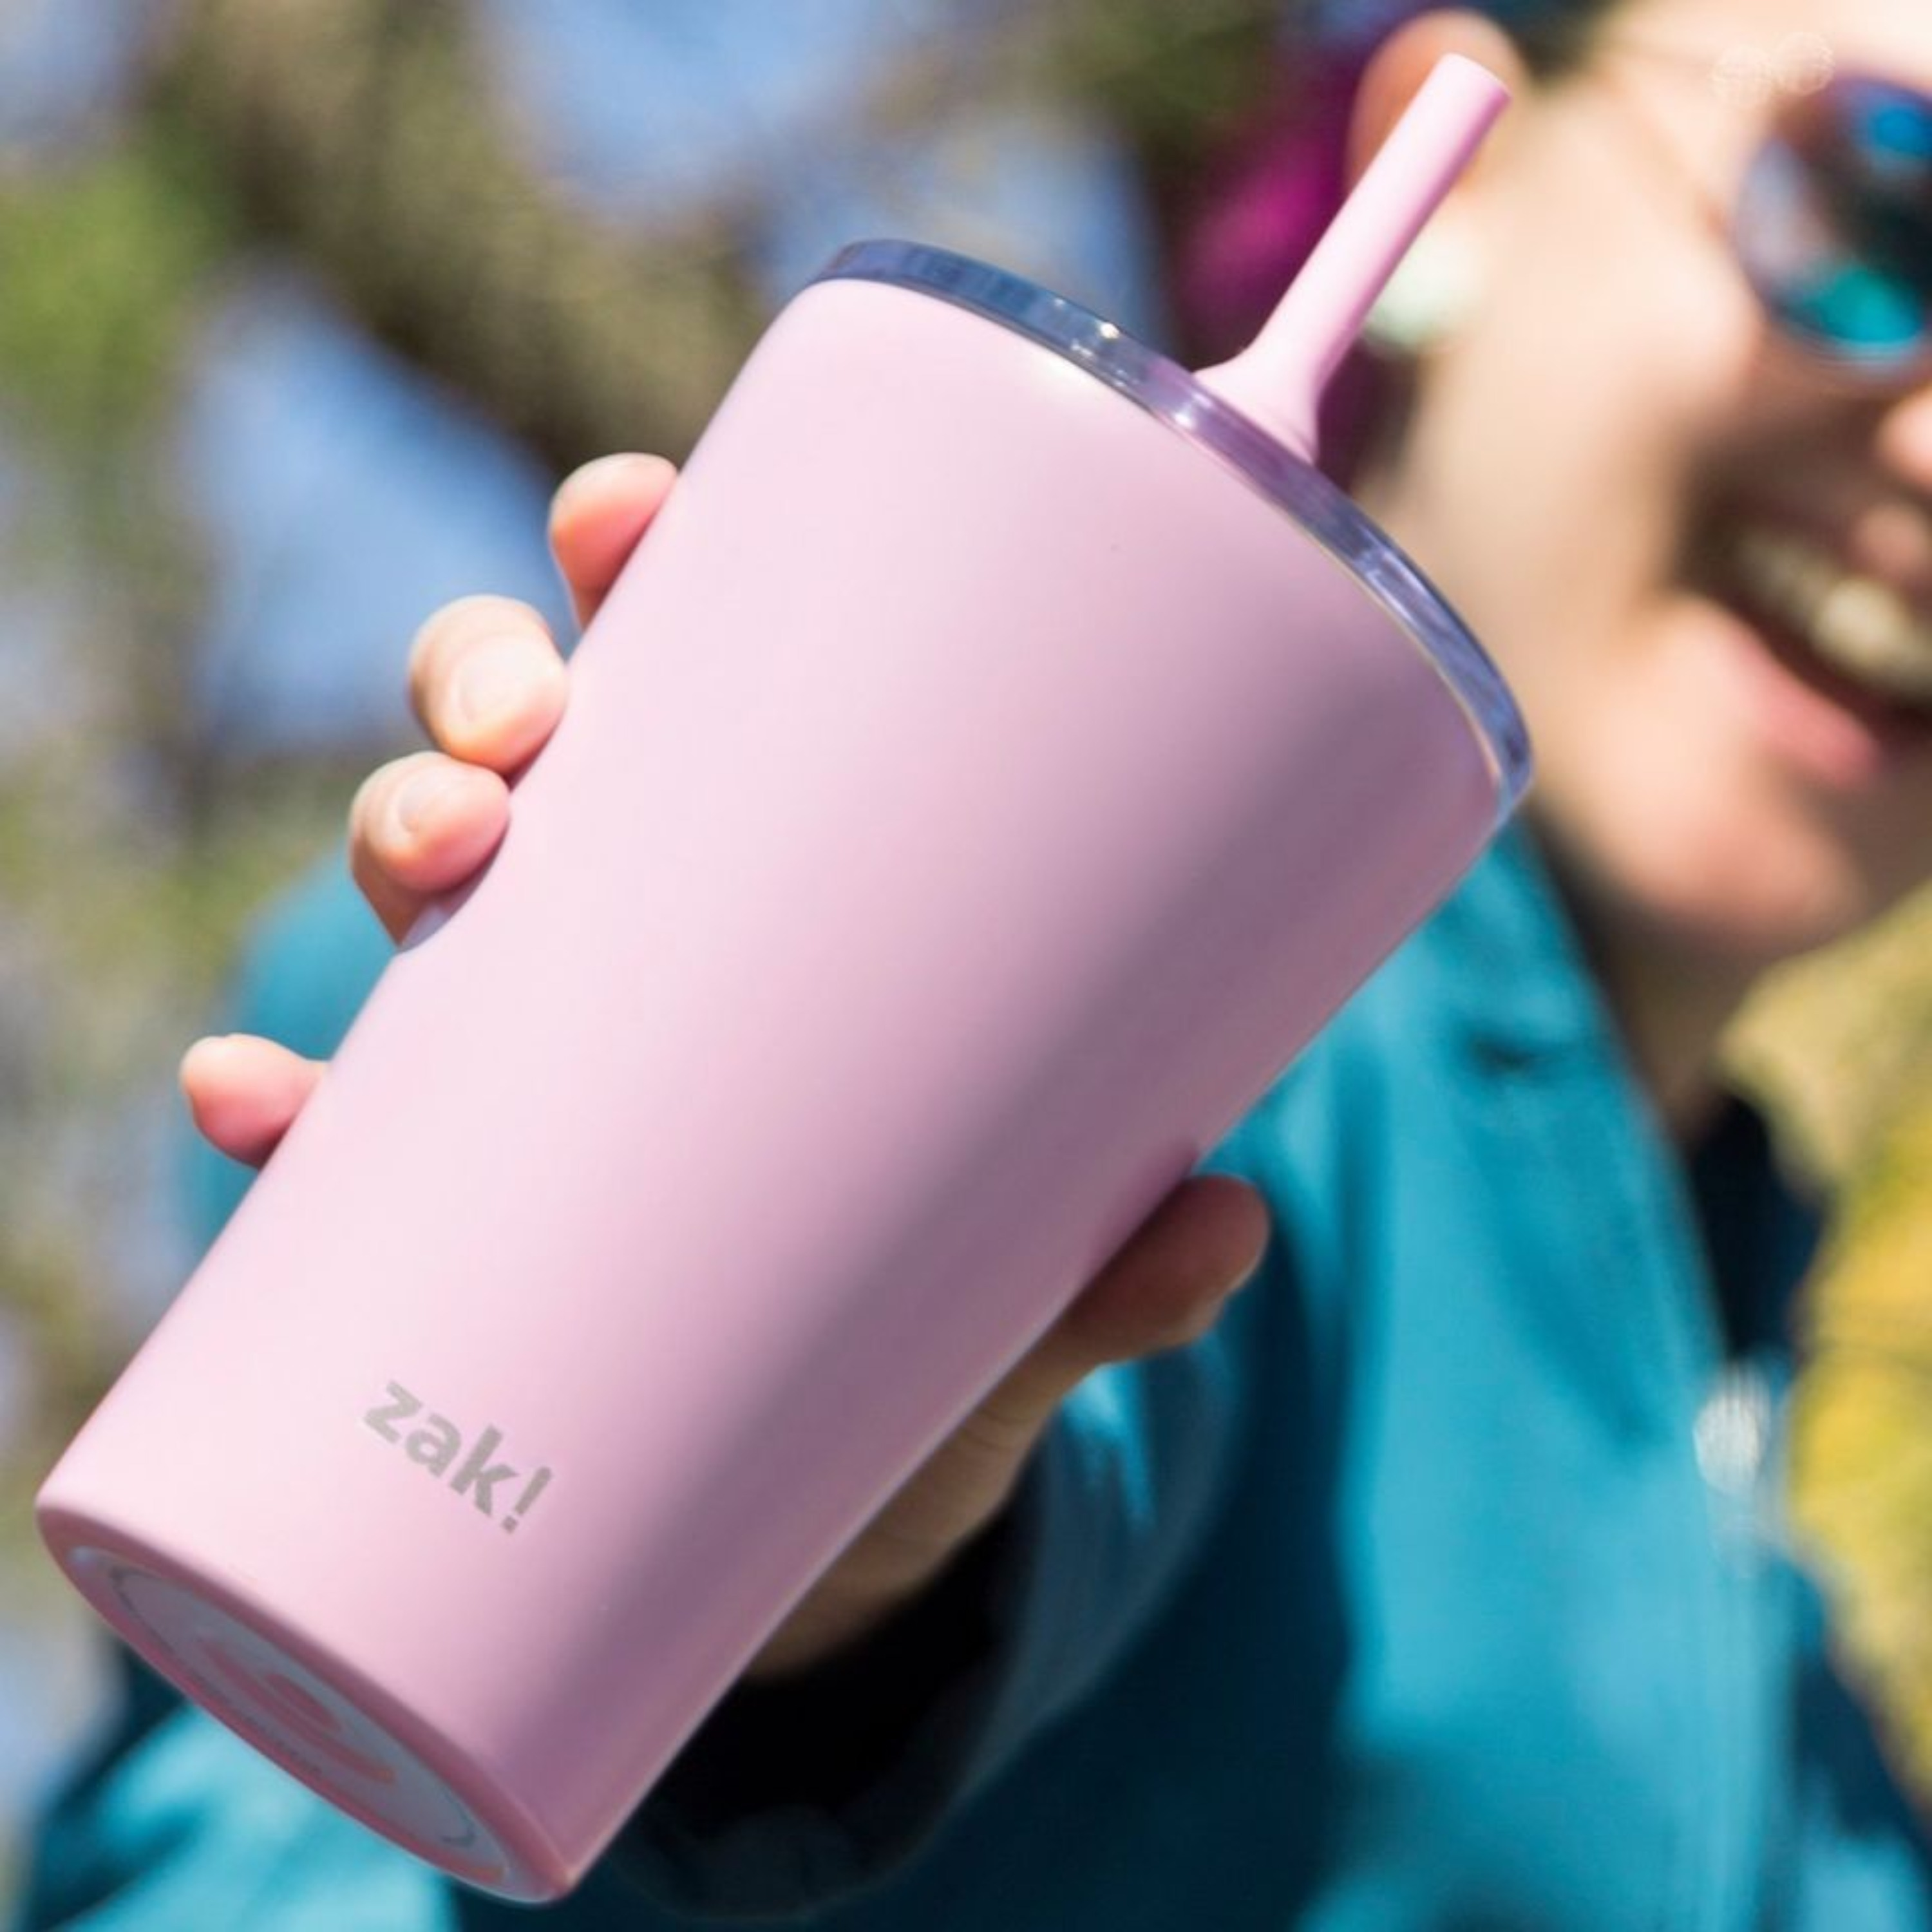 Alfalfa 20 ounce Vacuum Insulated Stainless Steel Tumbler, Lilac slideshow image 4